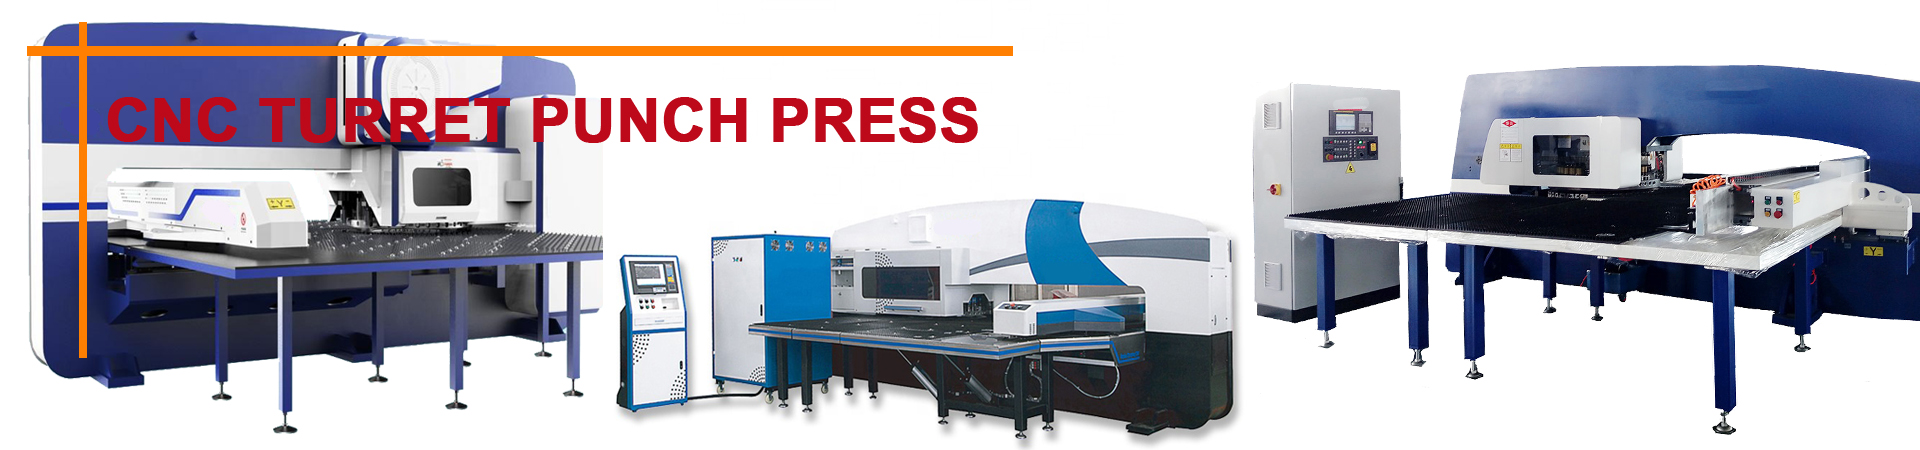 Qinggong CNC TURRET PUNCH PRESS